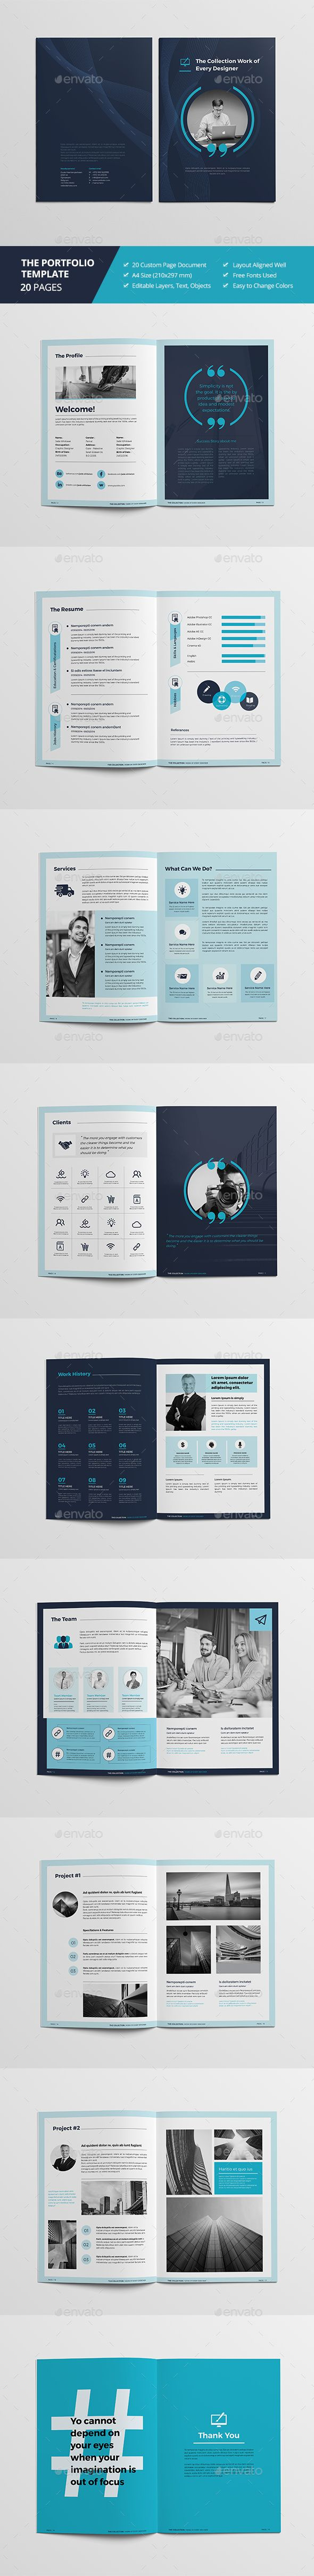 Haweya Portfolio Brochure — InDesign INDD #professional #identity • Download ➝ https://graphicriver.net/item/haweya-portfolio-brochure/19847352?ref=pxcr